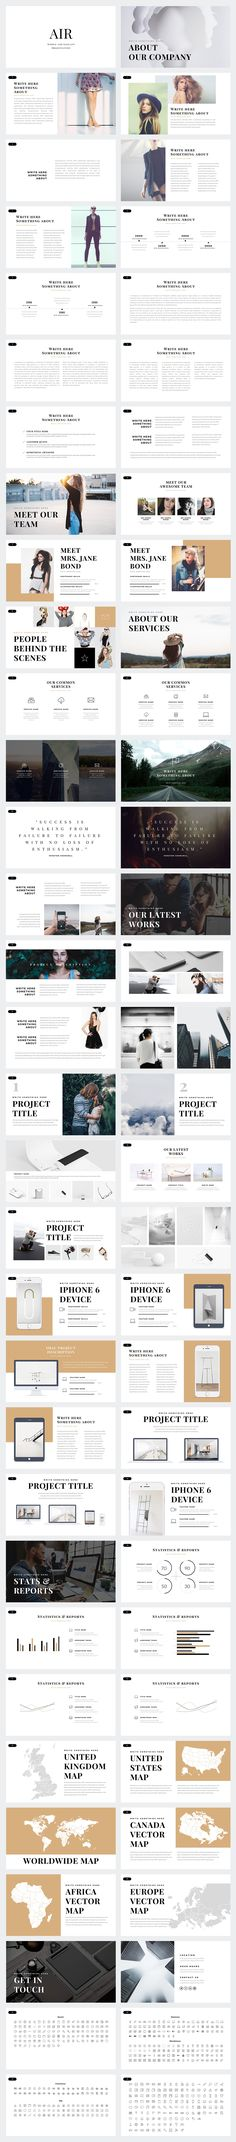 Air Minimal Keynote Template by Slidedizer on @creativemarket